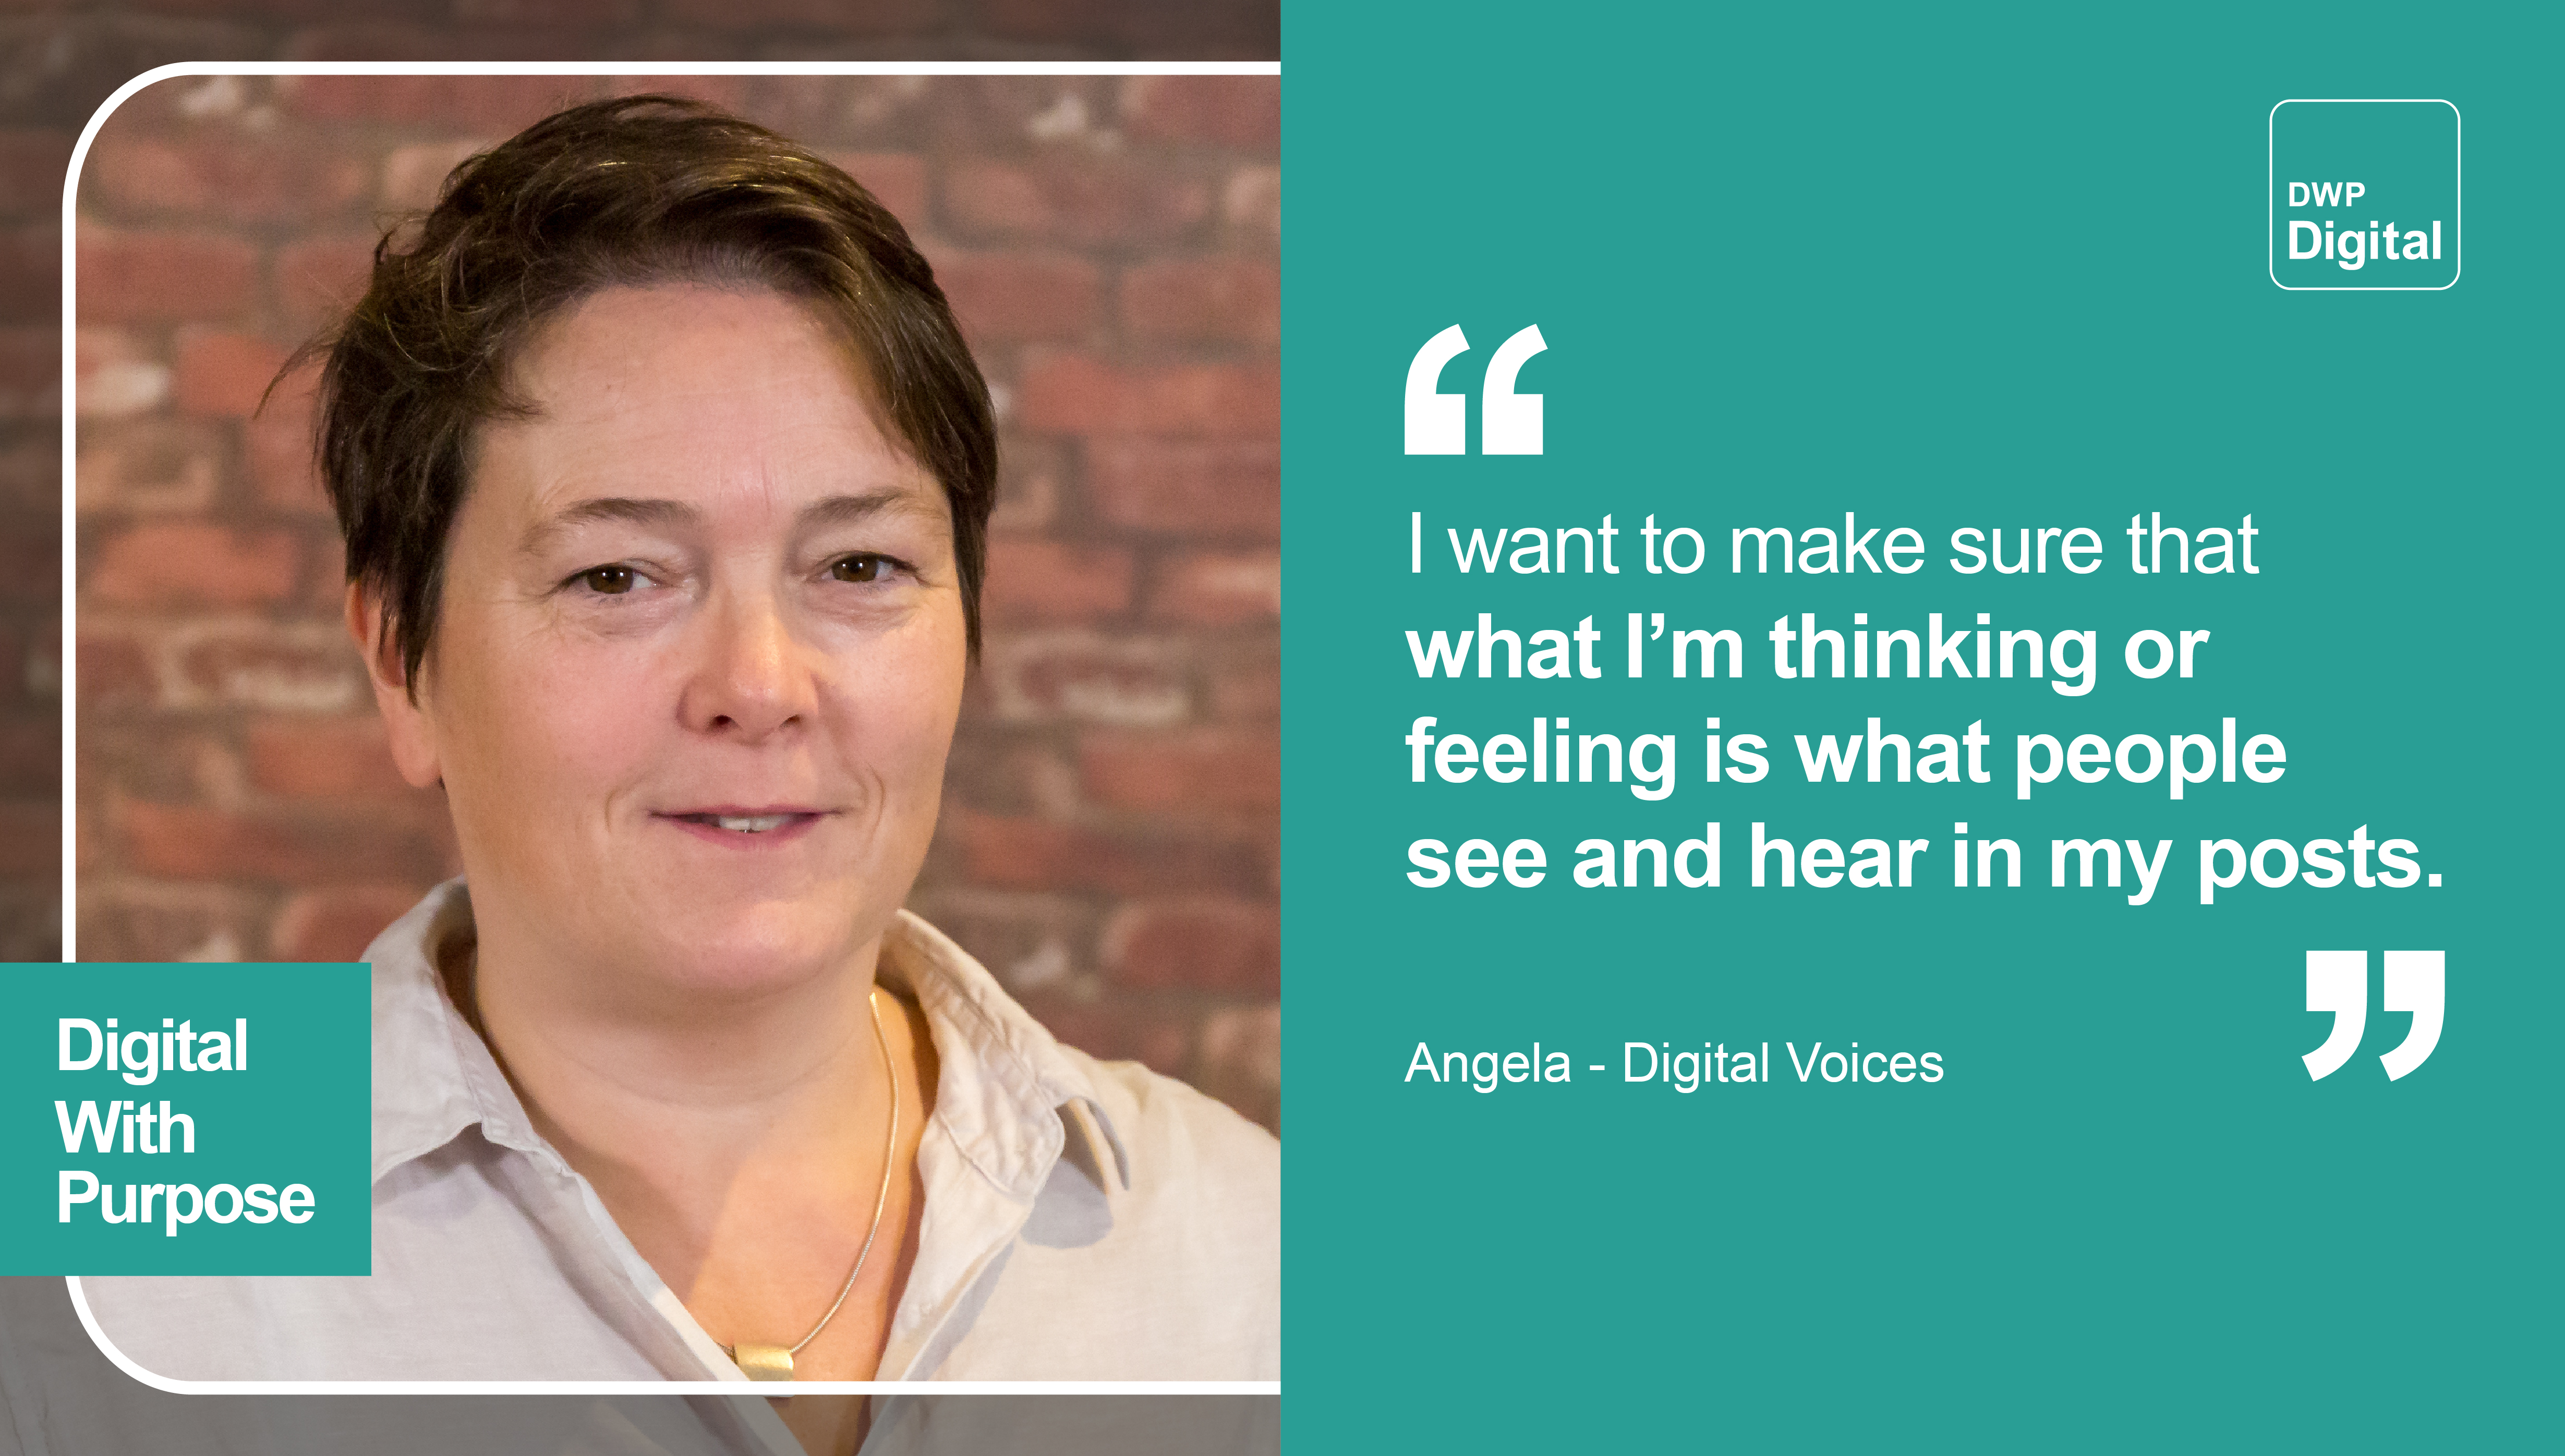 """Photo of Angela, from our Digital Voices programme, and text with the quote: """"I want to make sure that what I'm thinking or feeling is what people see and hear in my posts."""""""